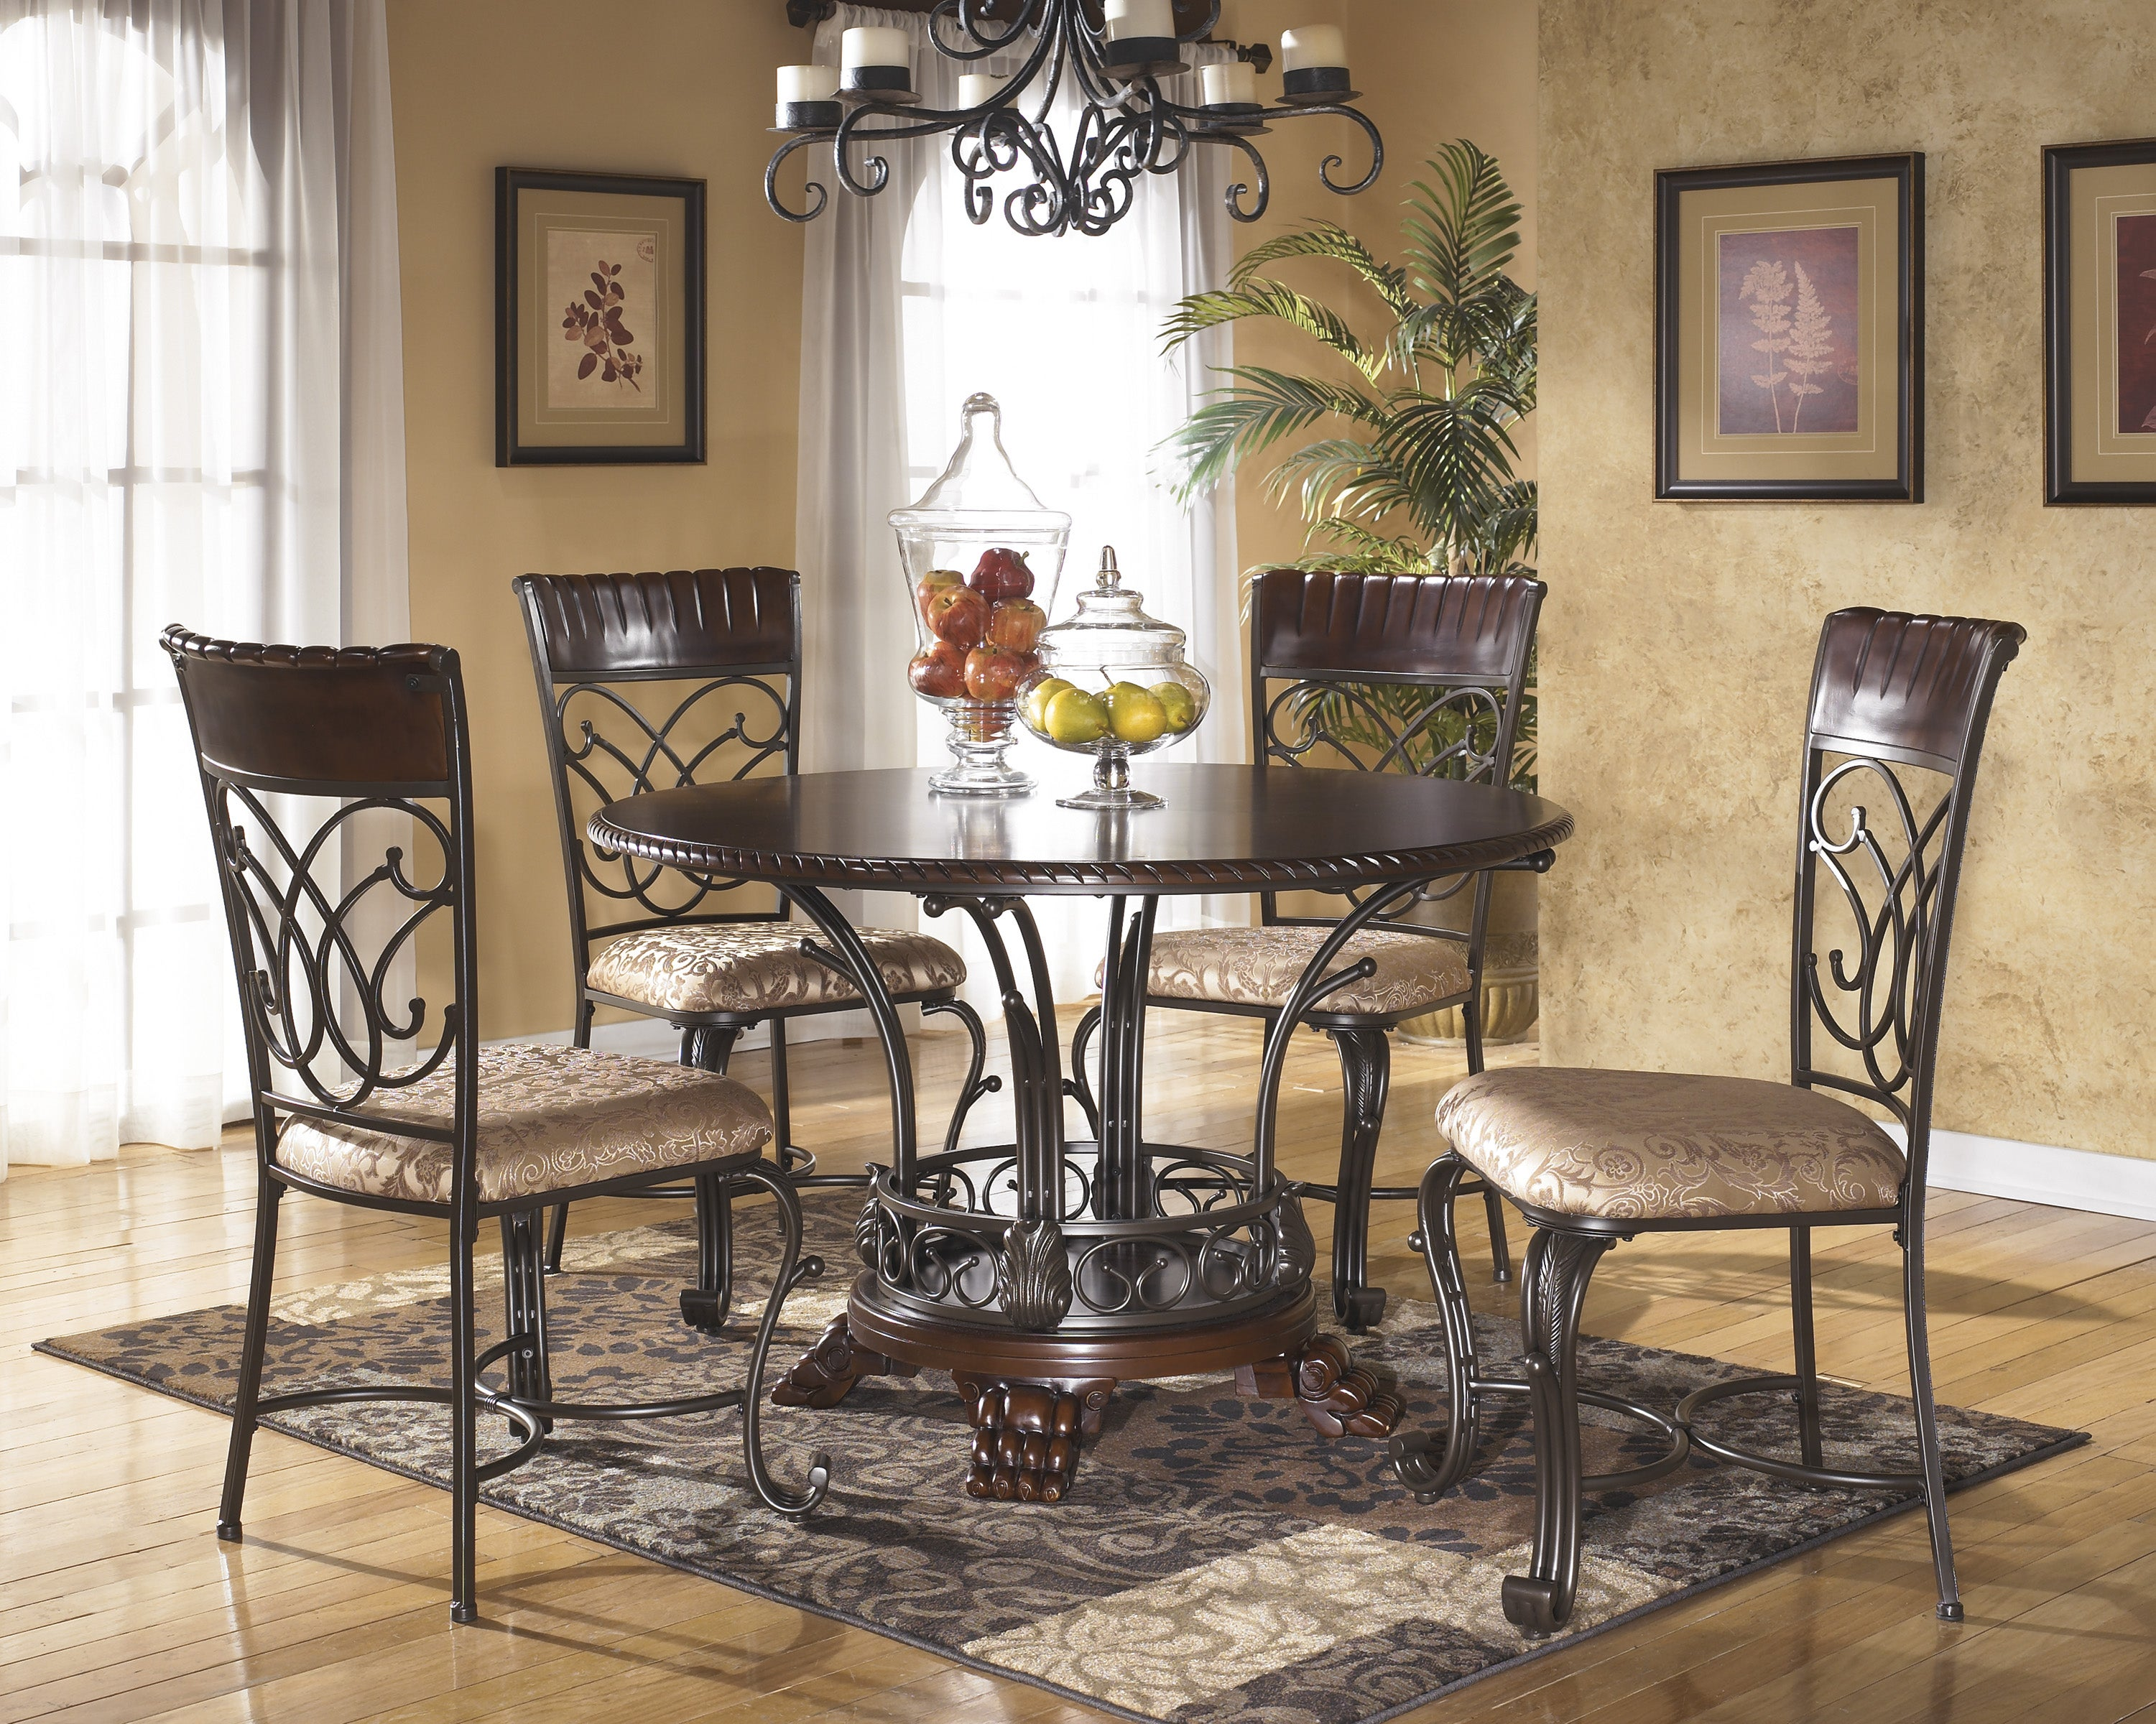 Signature Designs by Ashley Alyssa Round Dining Room Table